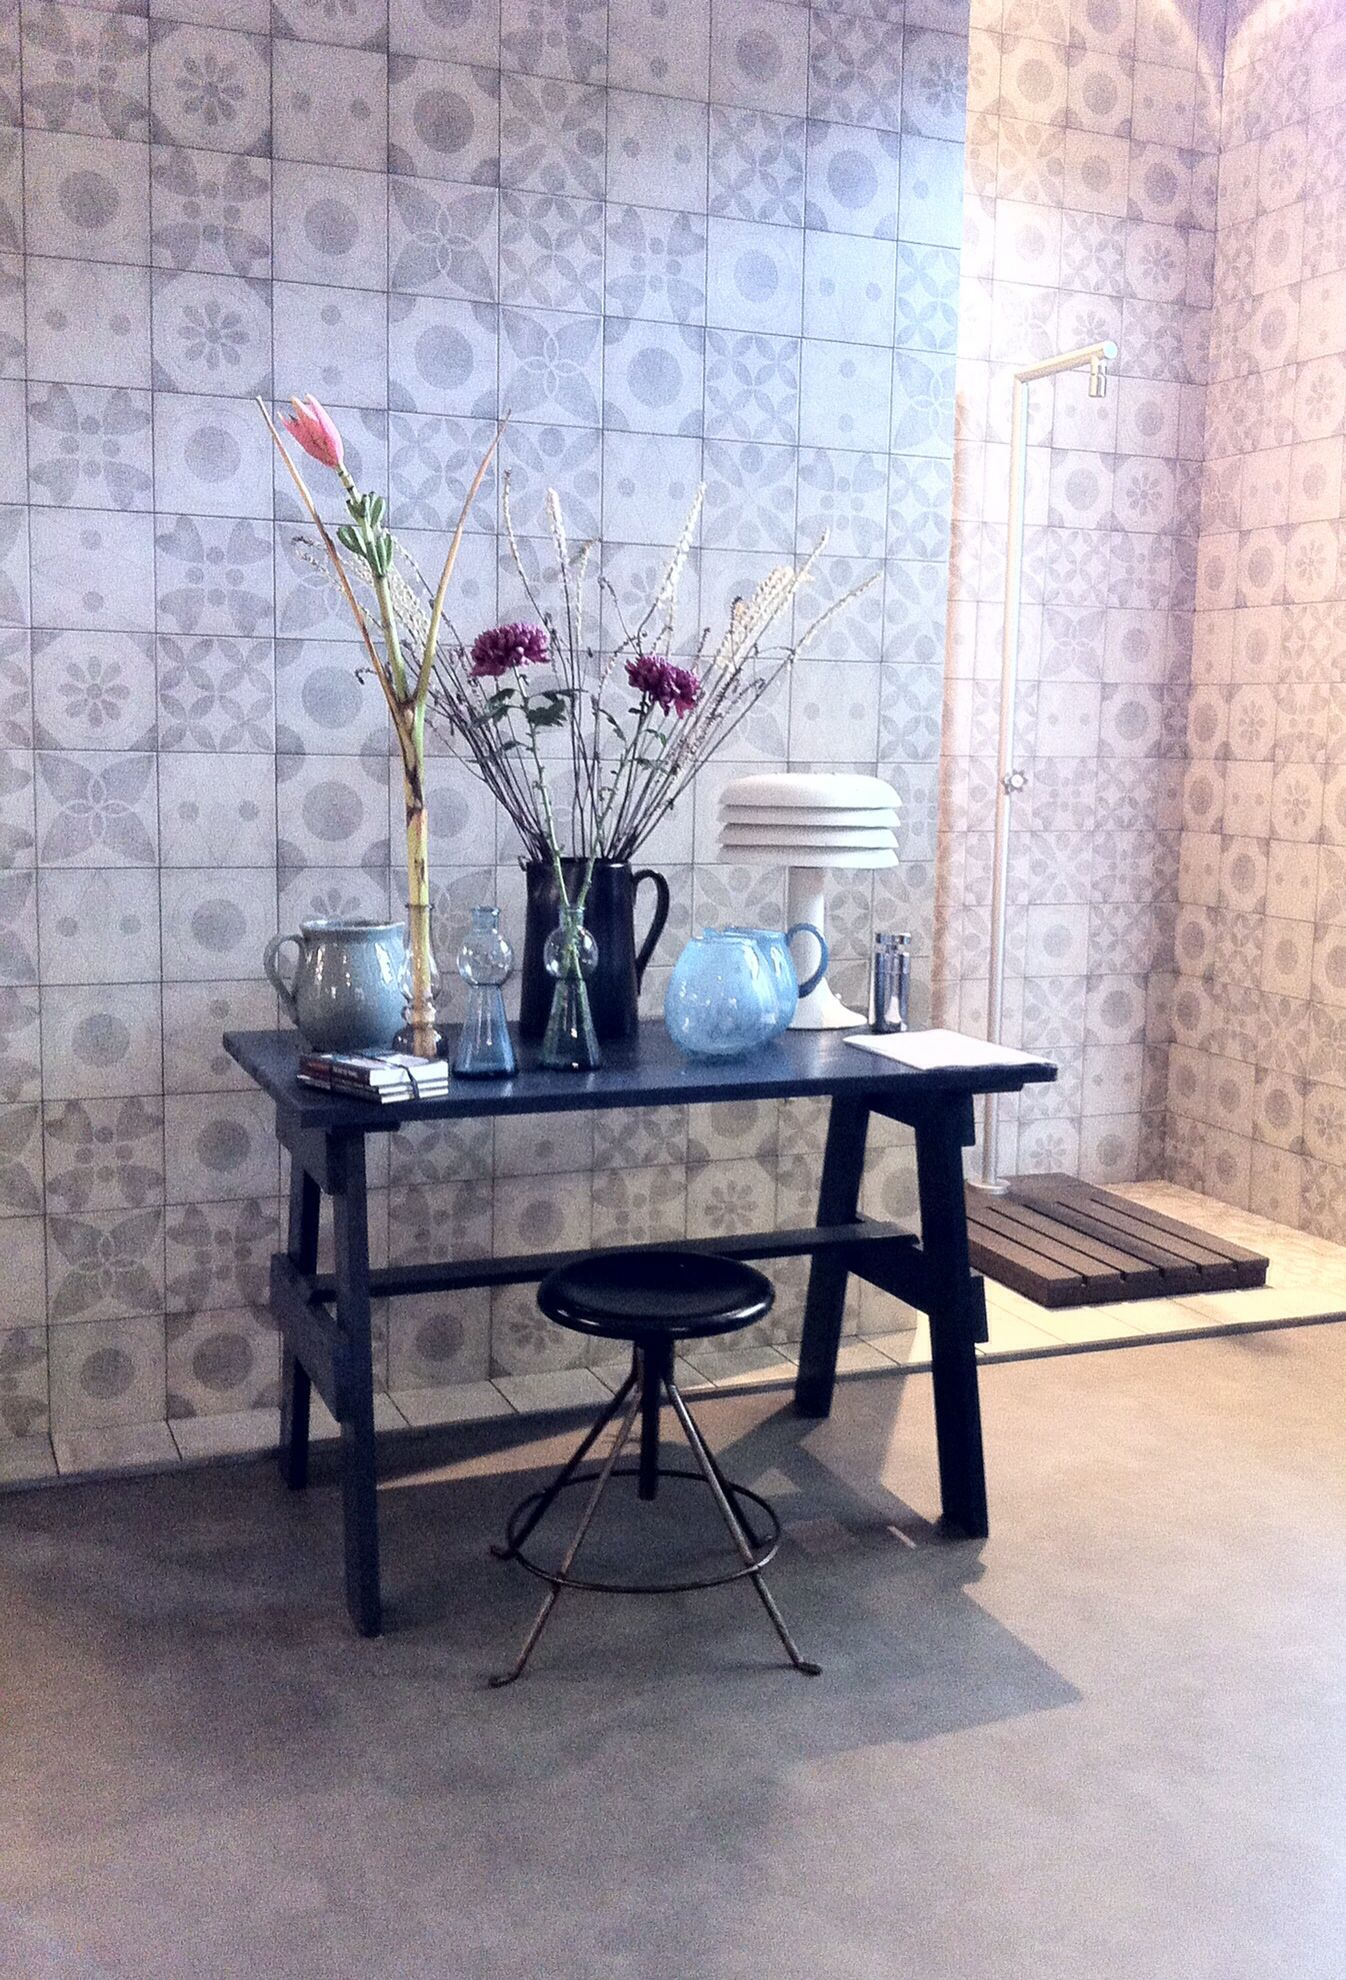 17 best images about badkamer on pinterest toilets grey and tile